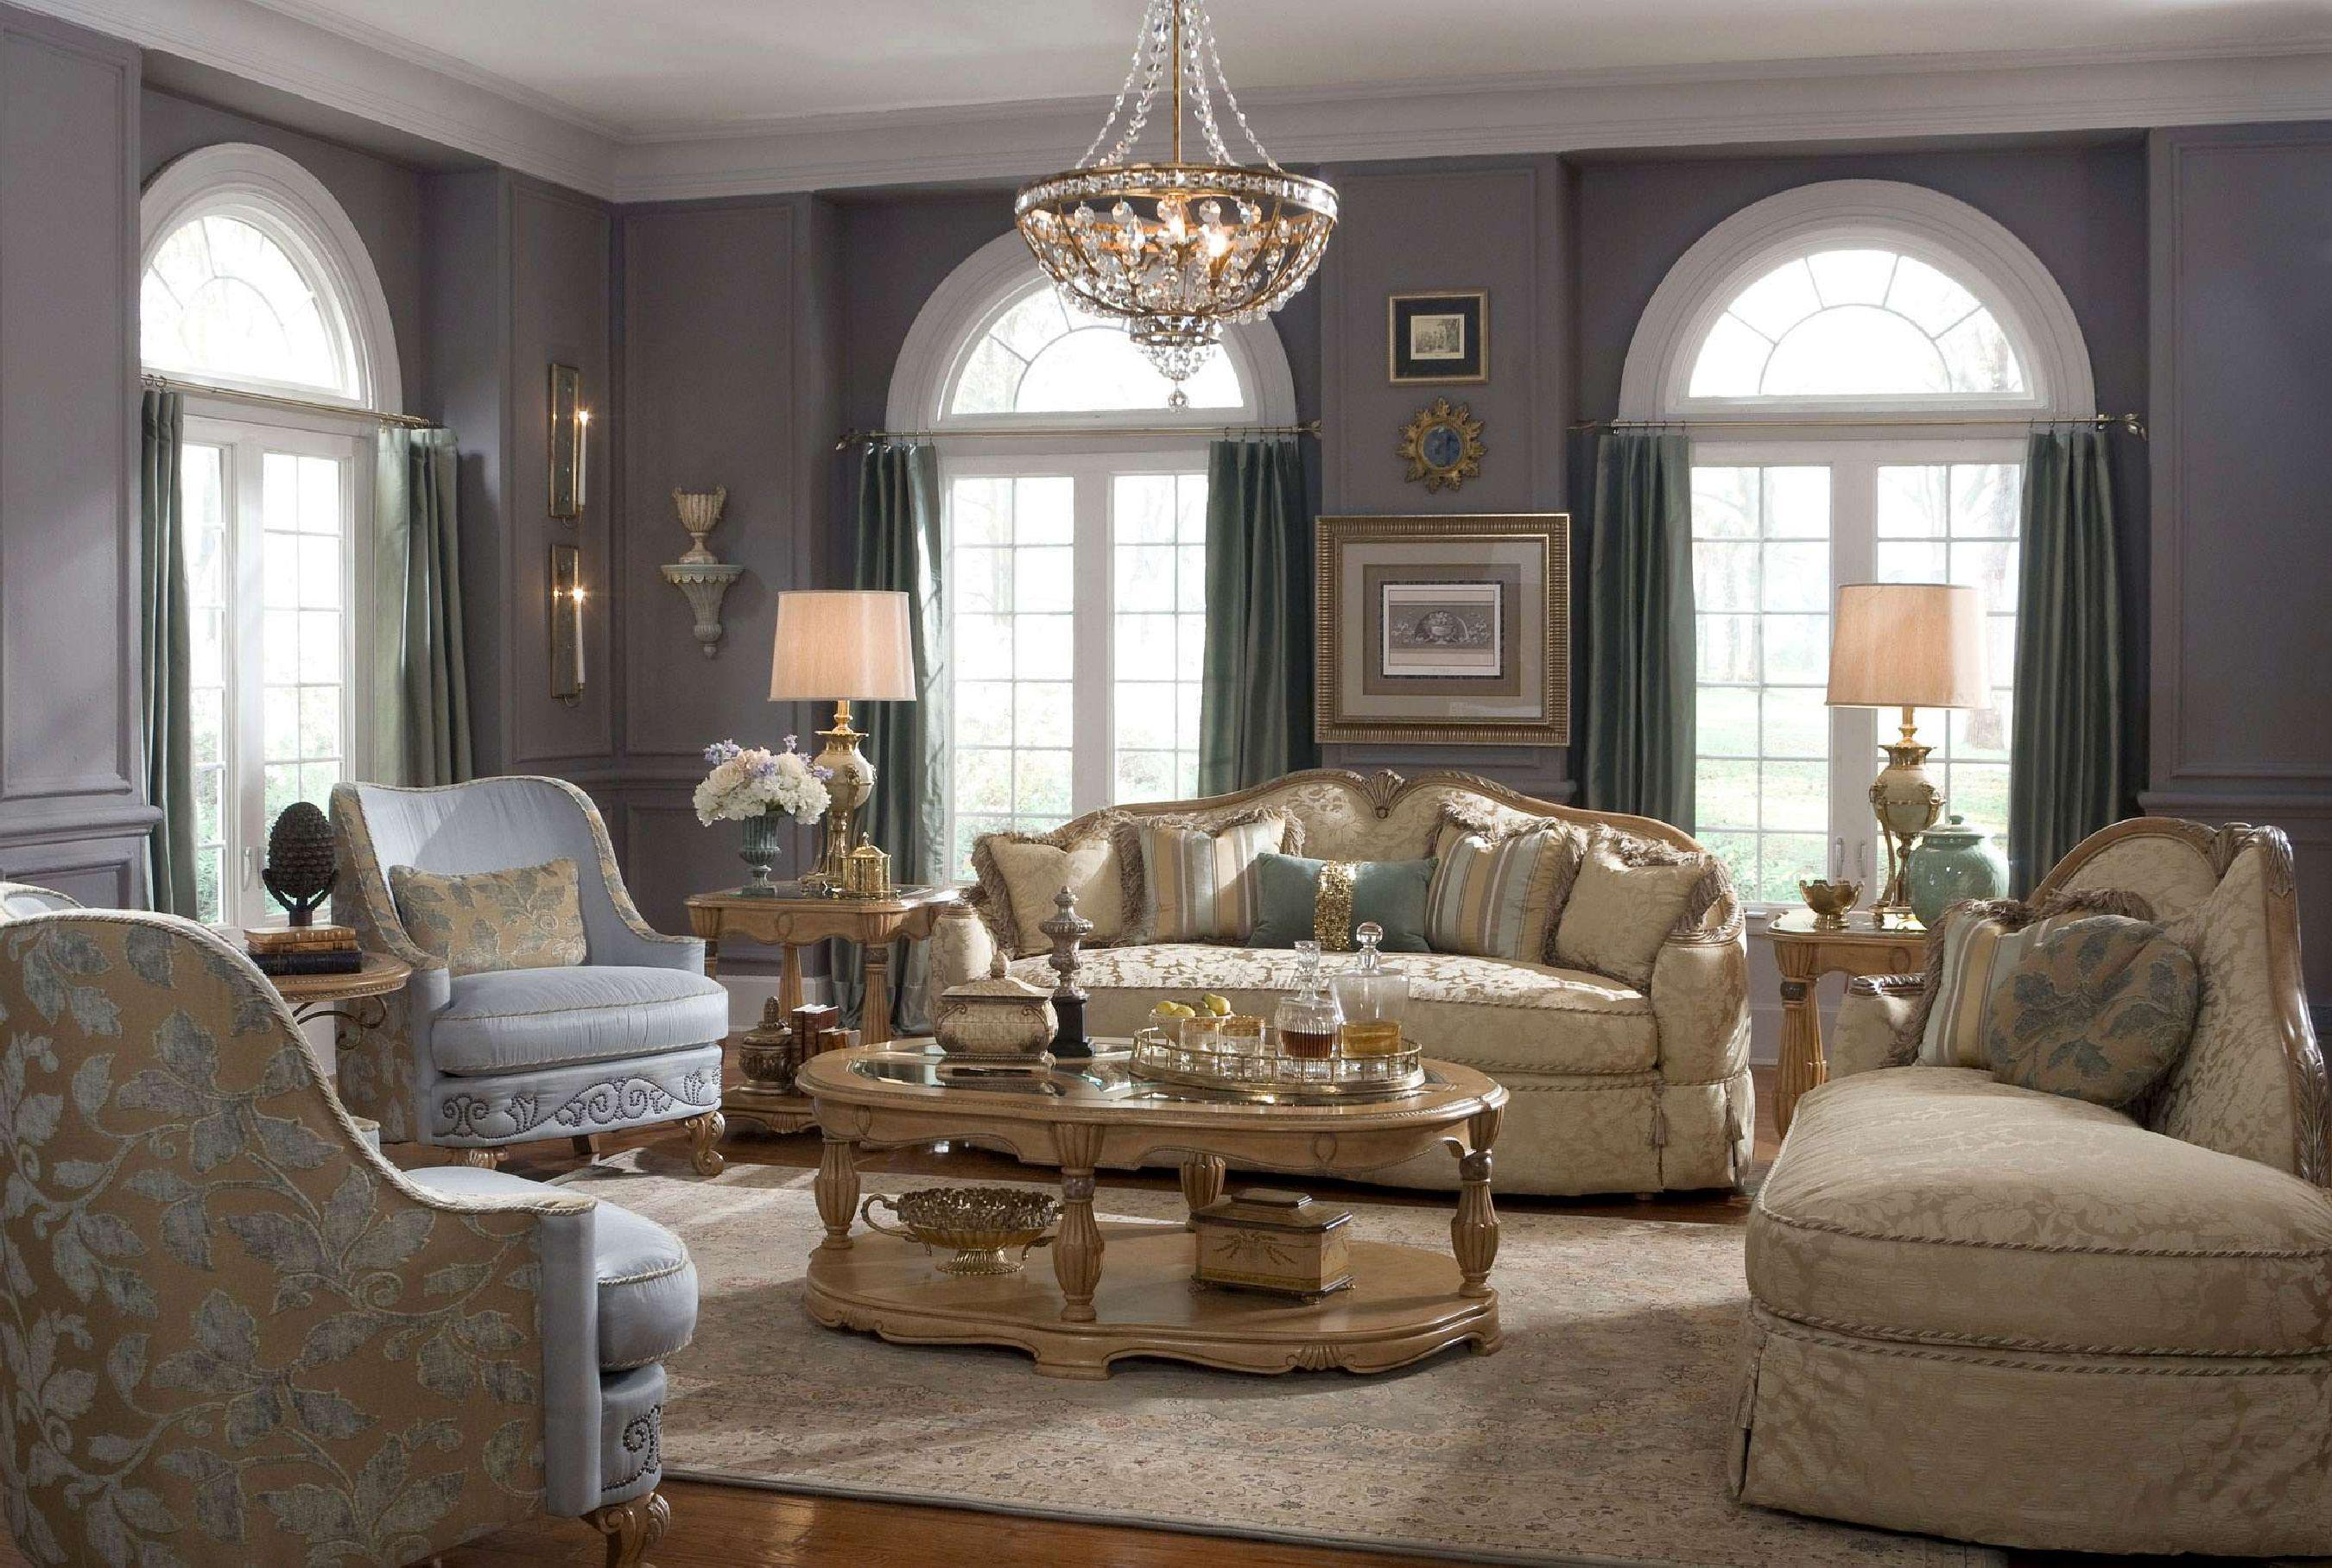 How To Decorate Your Home interior design gallery: decorating your home